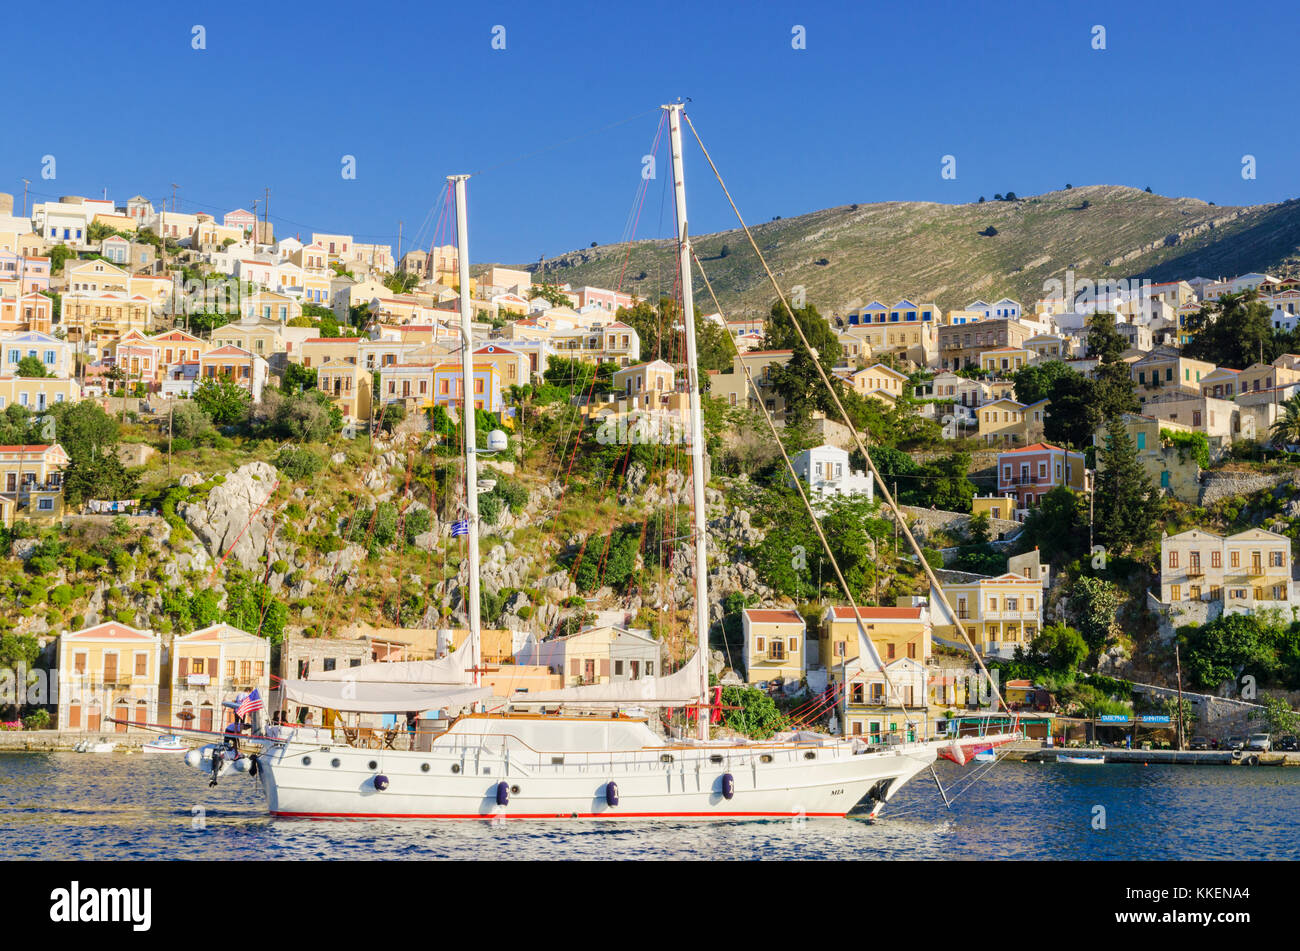 A ketch sails into the scenic harbour of Yialos Town, on the island of Symi, Dodecanese, Greece - Stock Image